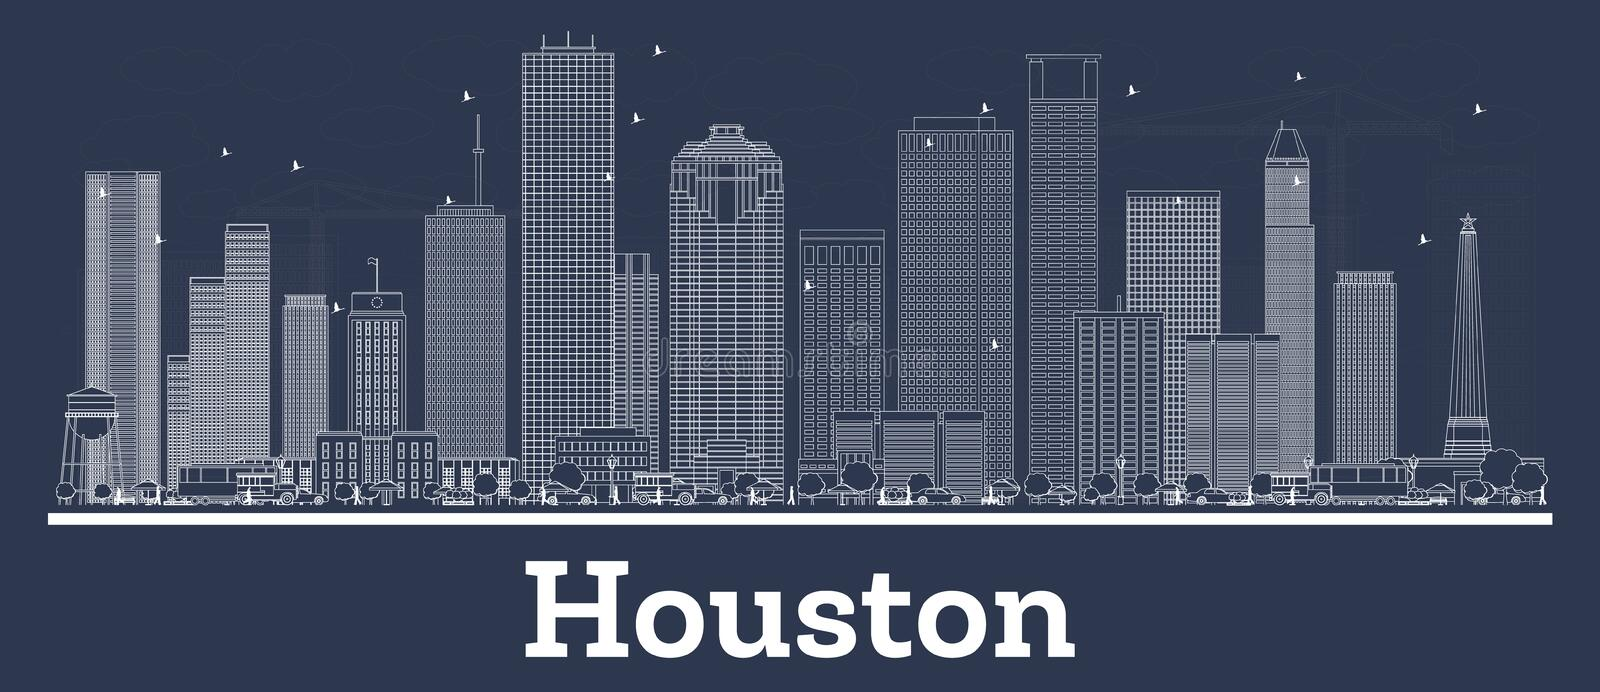 Översikt Houston Texas City Skyline med vita byggnader vektor illustrationer